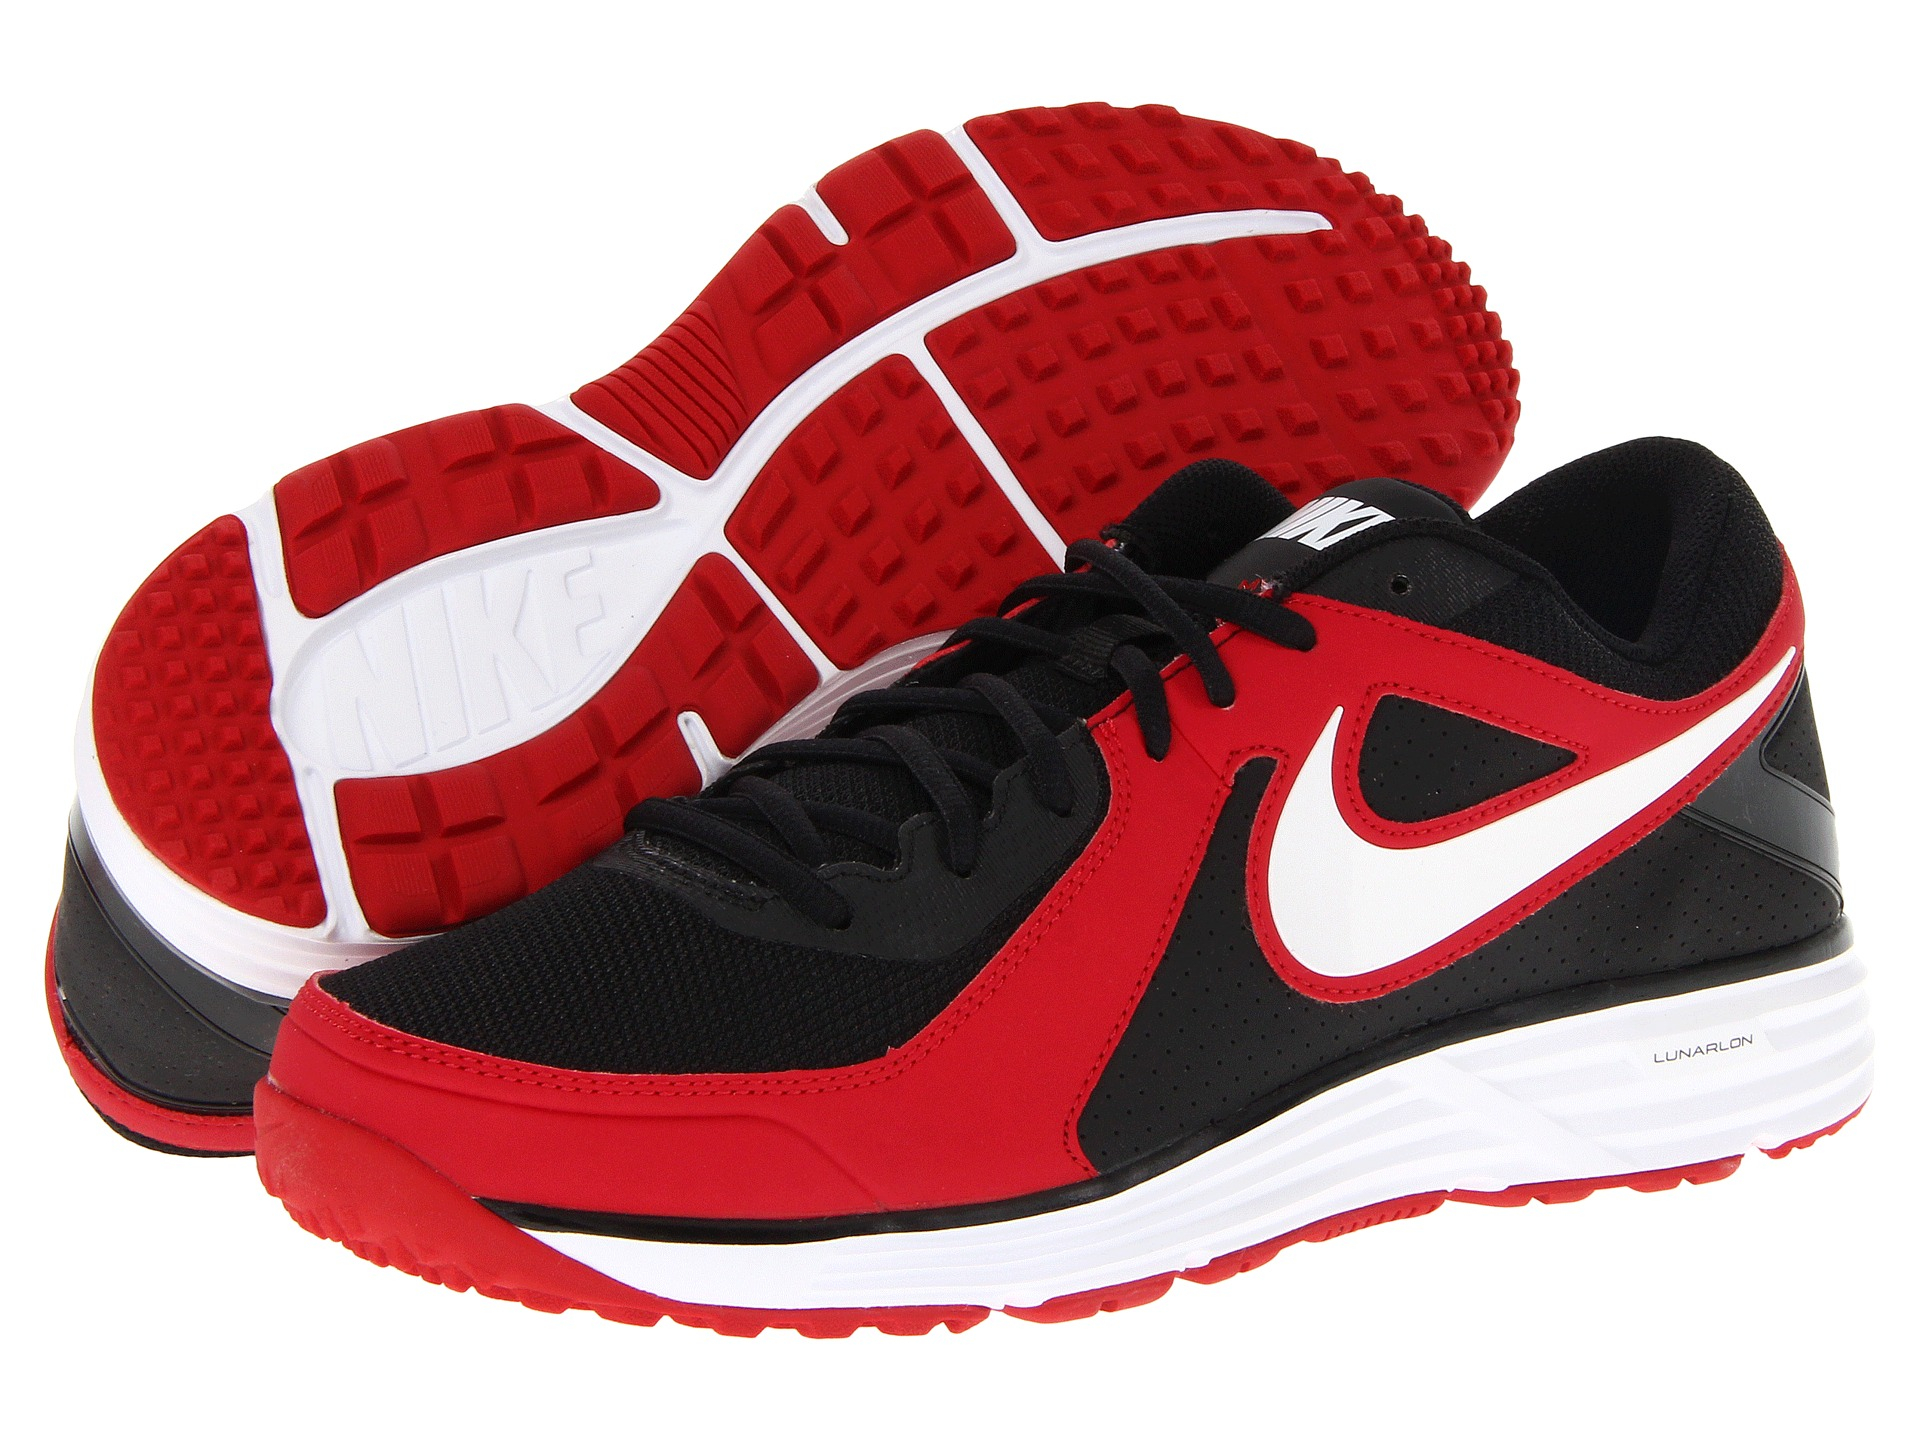 competitive price a0106 4b537 nike lunar mvp pro pregame shoes